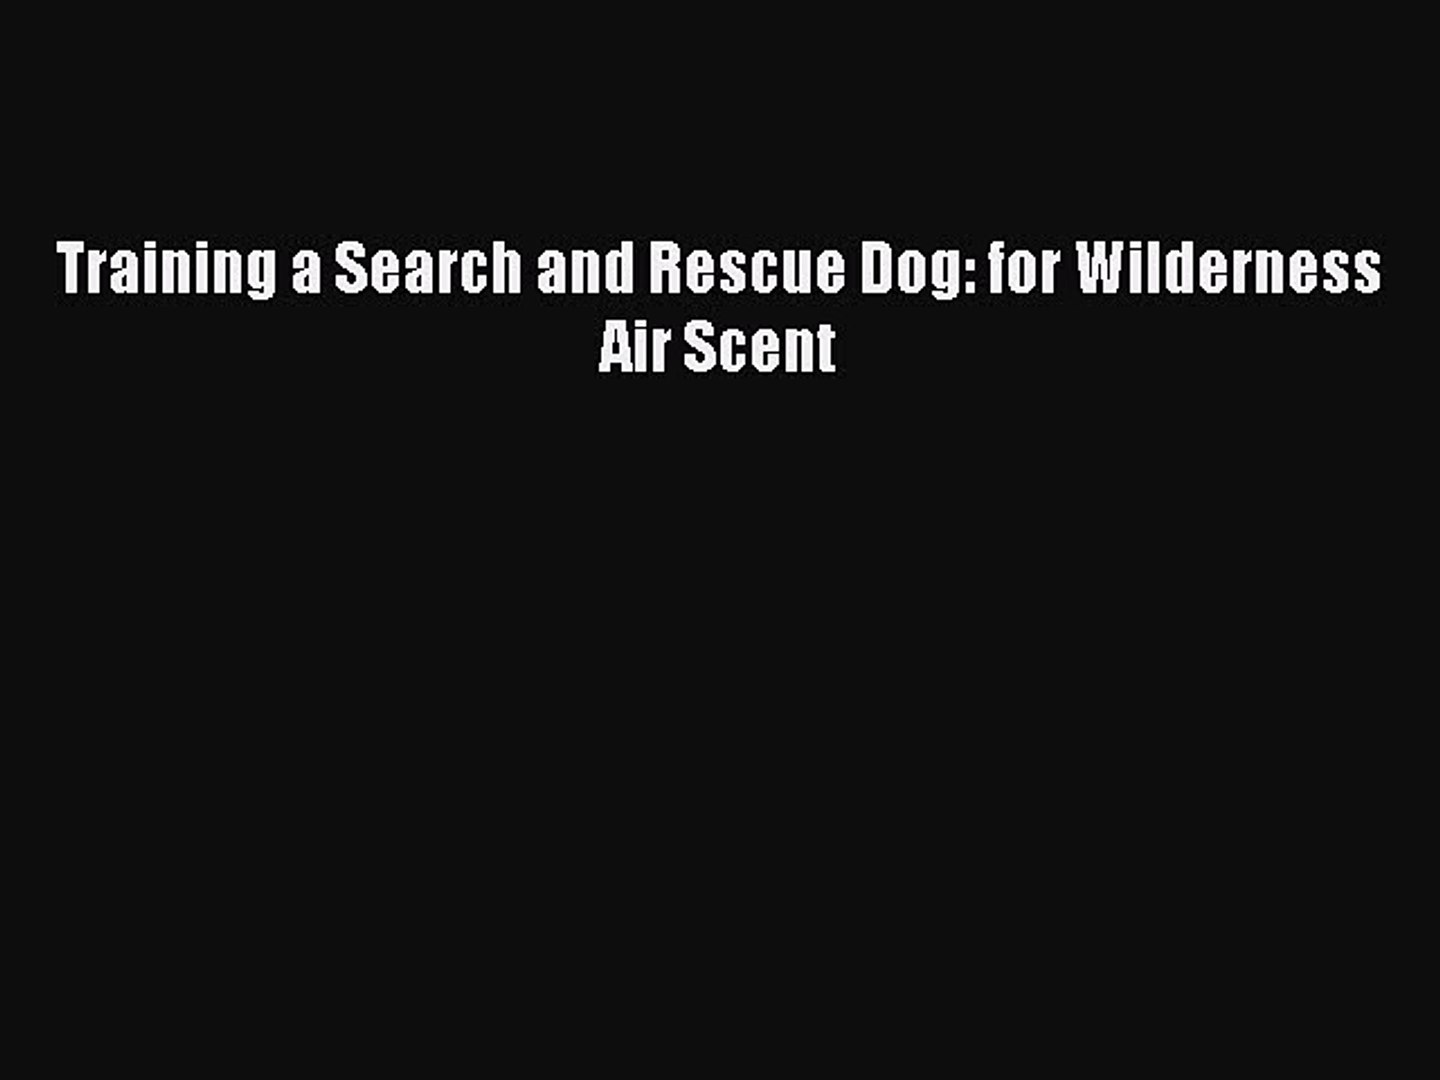 Training a Search and Rescue Dog for Wilderness Air Scent